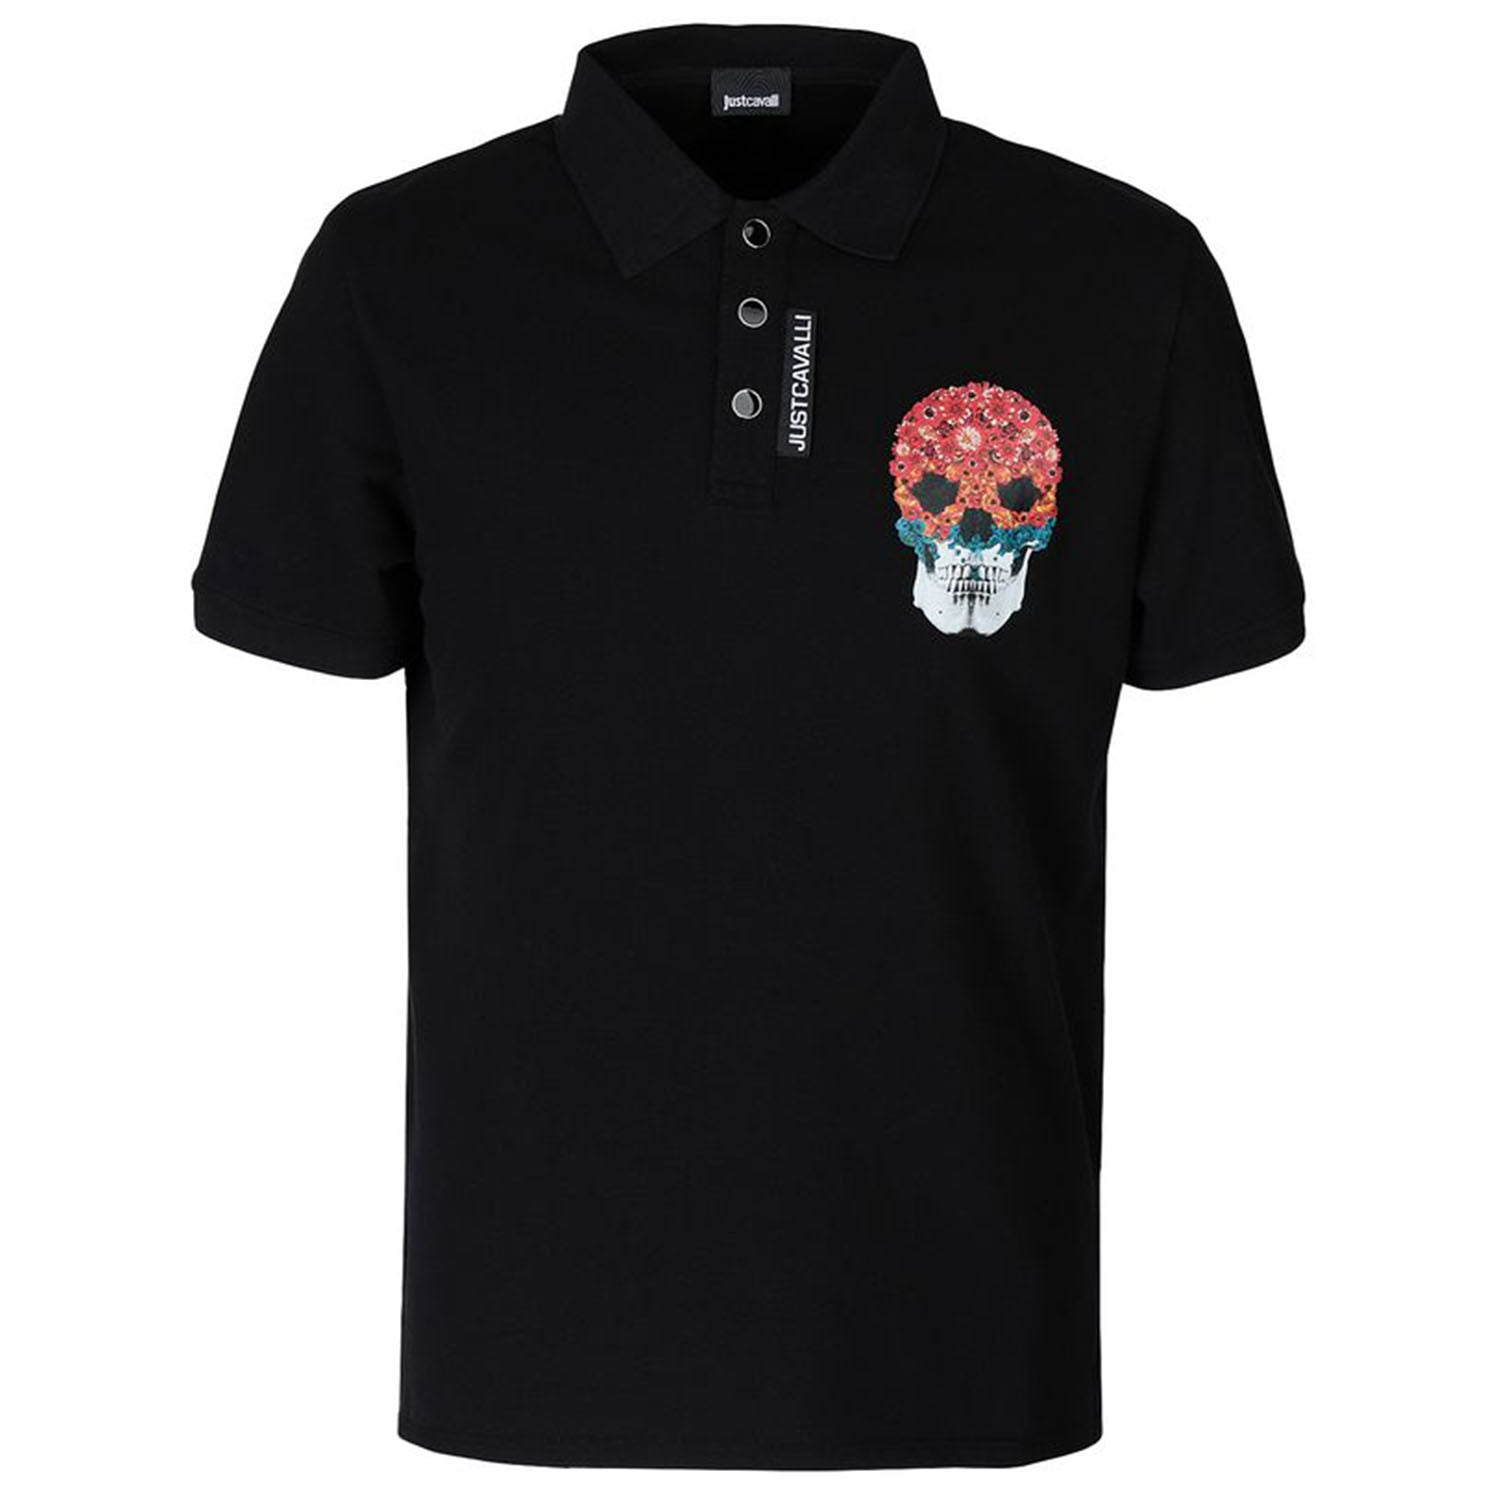 Just Cavalli Flower-Skull Print Polo T-Shirt